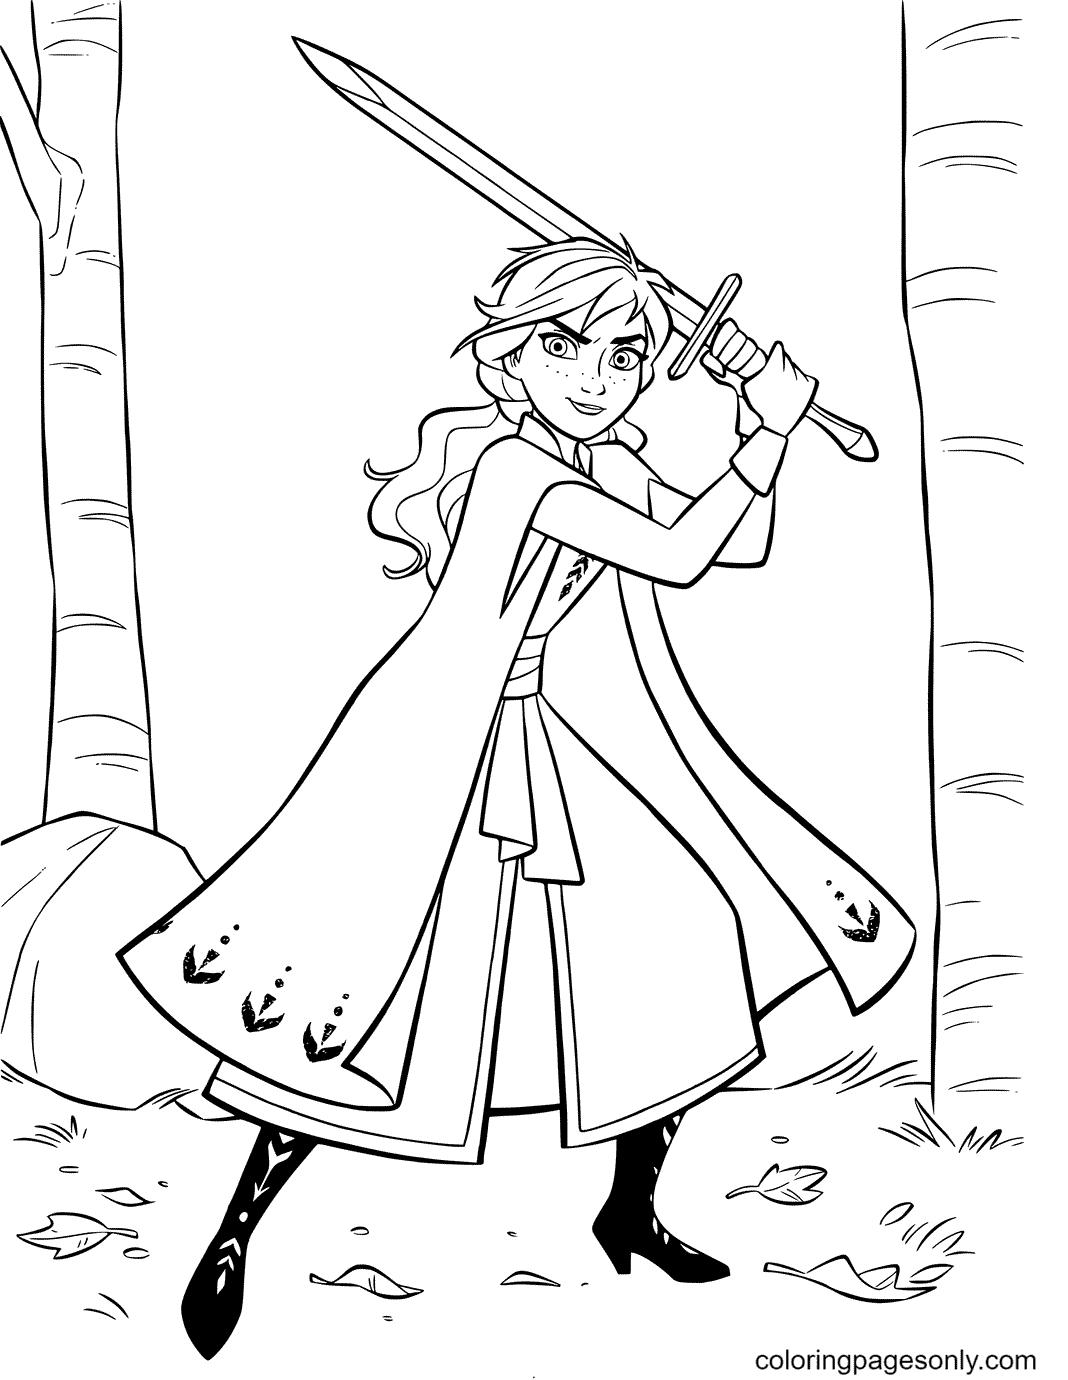 Anna with Sword Coloring Page